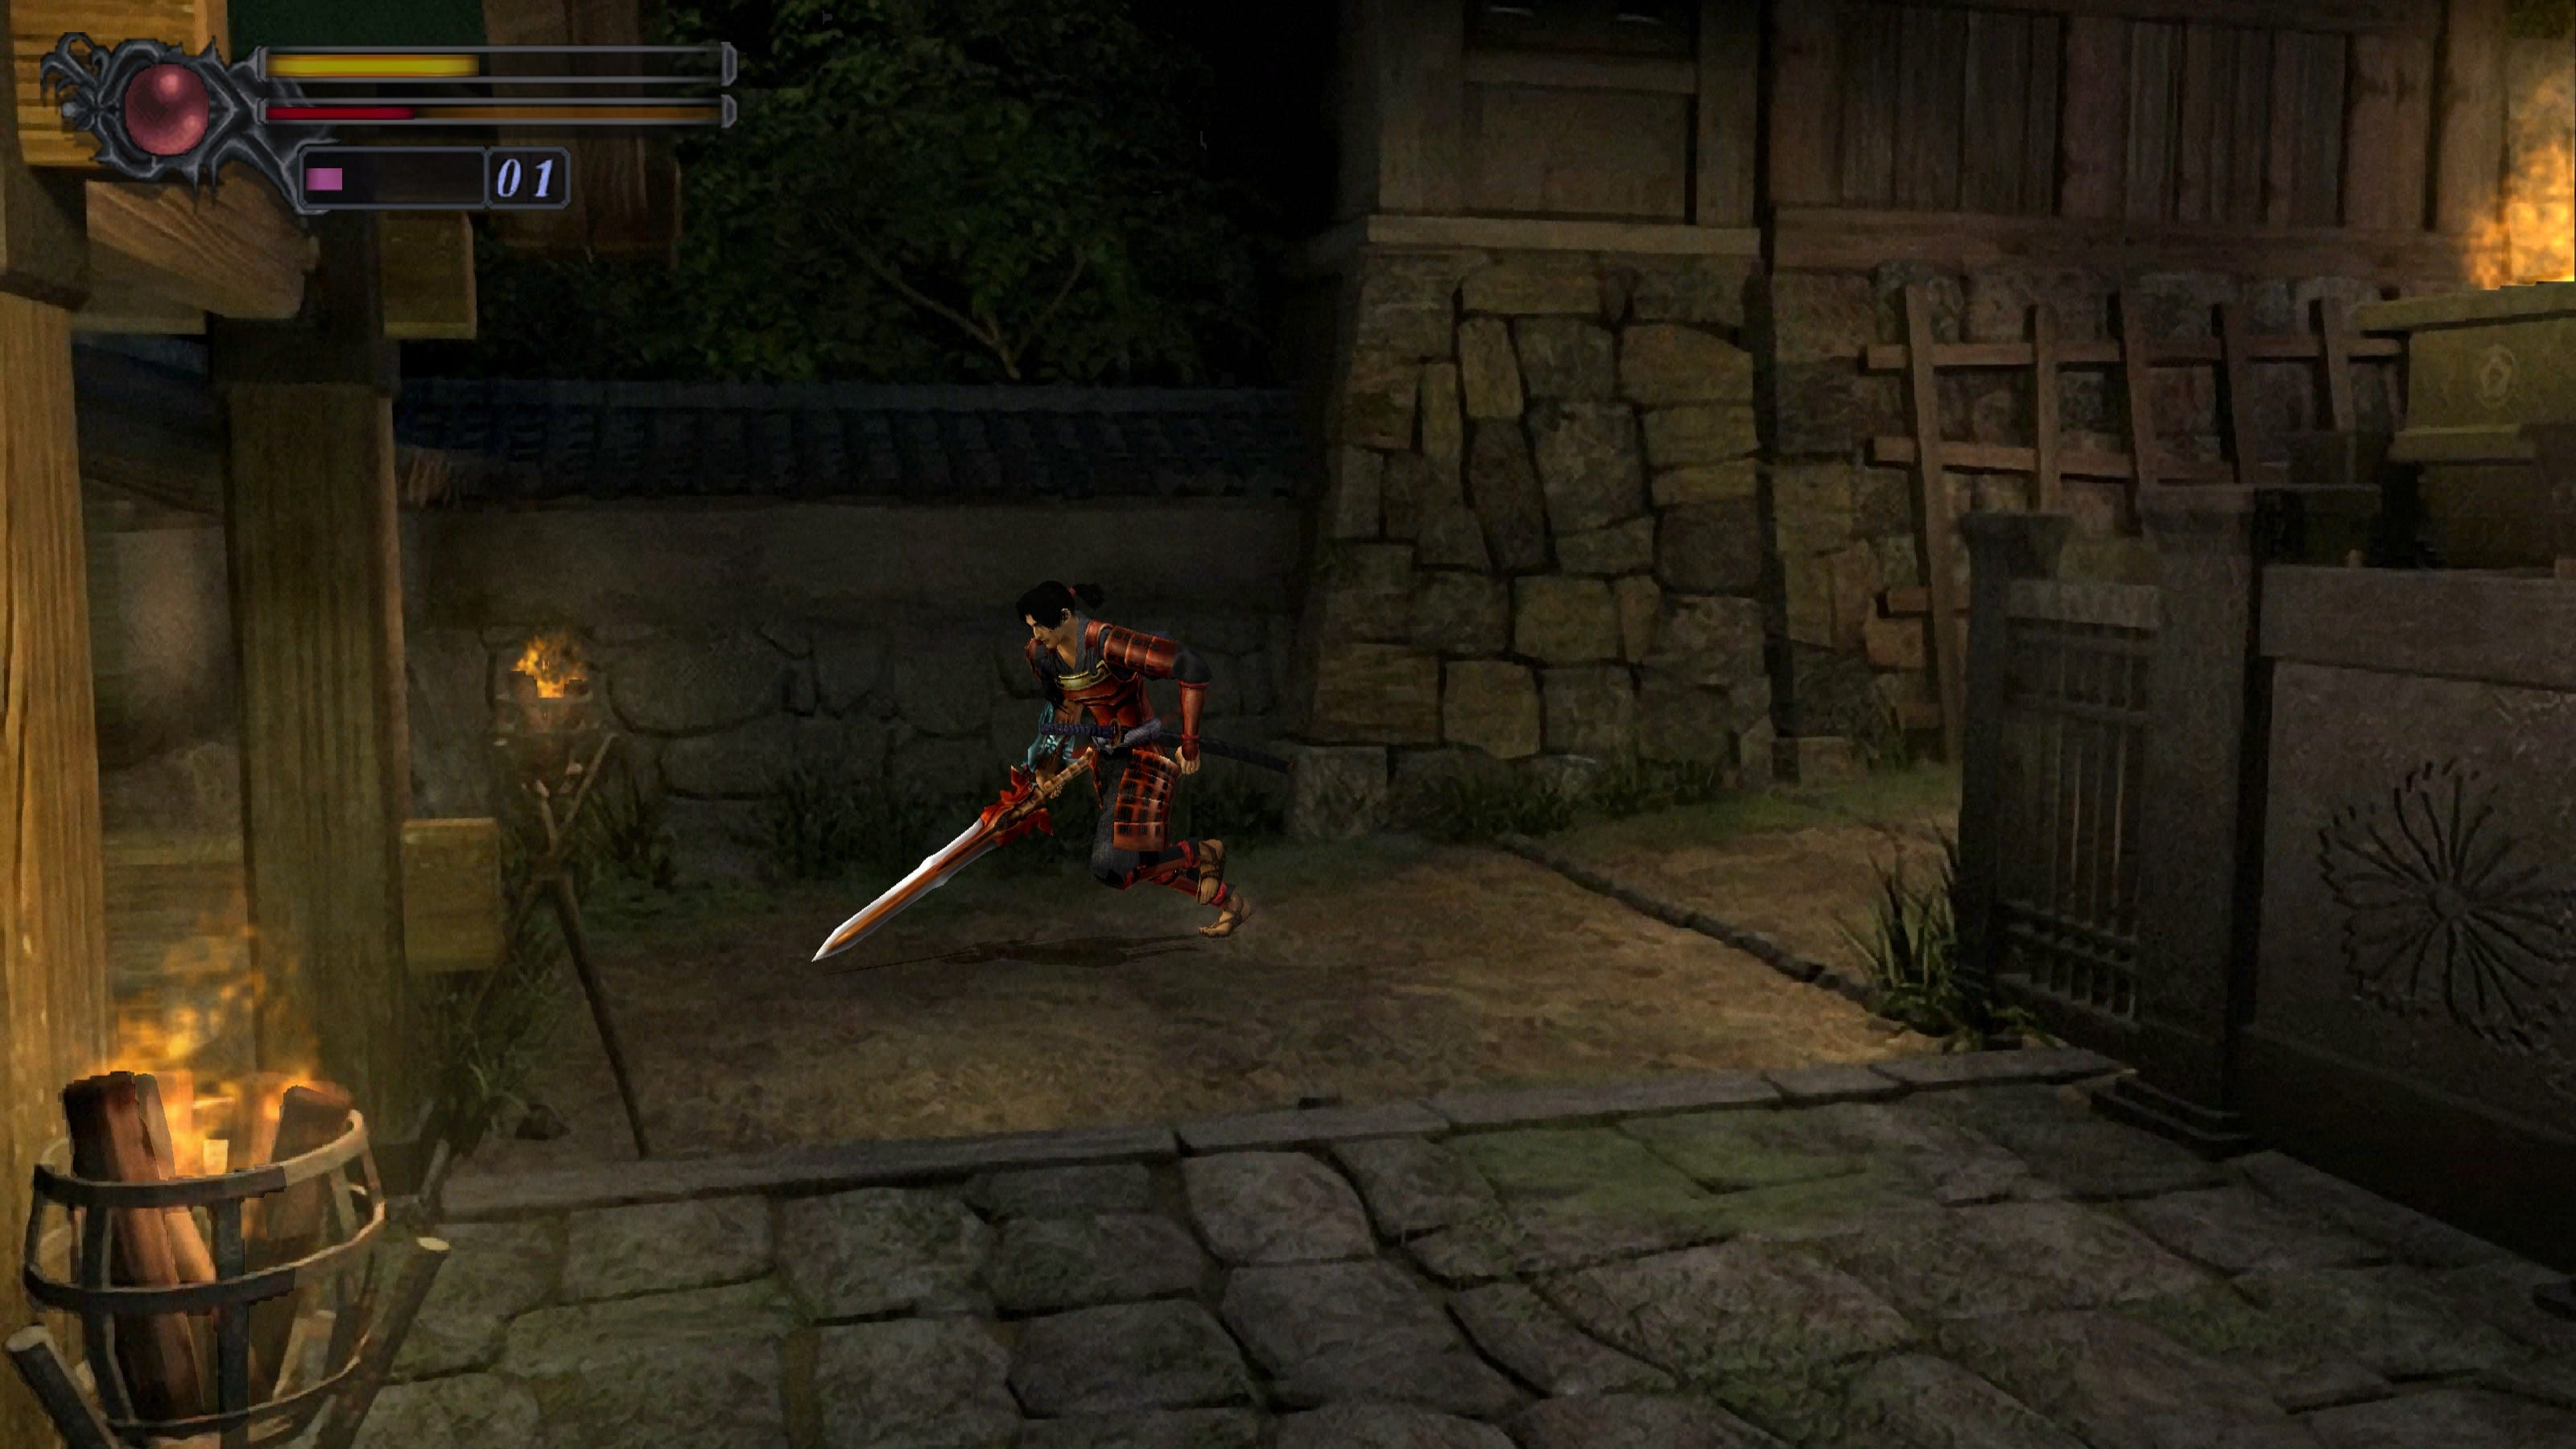 Onimusha Warlords Remastered Screenshot 14 - Onimusha: Warlords Remastered Review - TheNerdMag